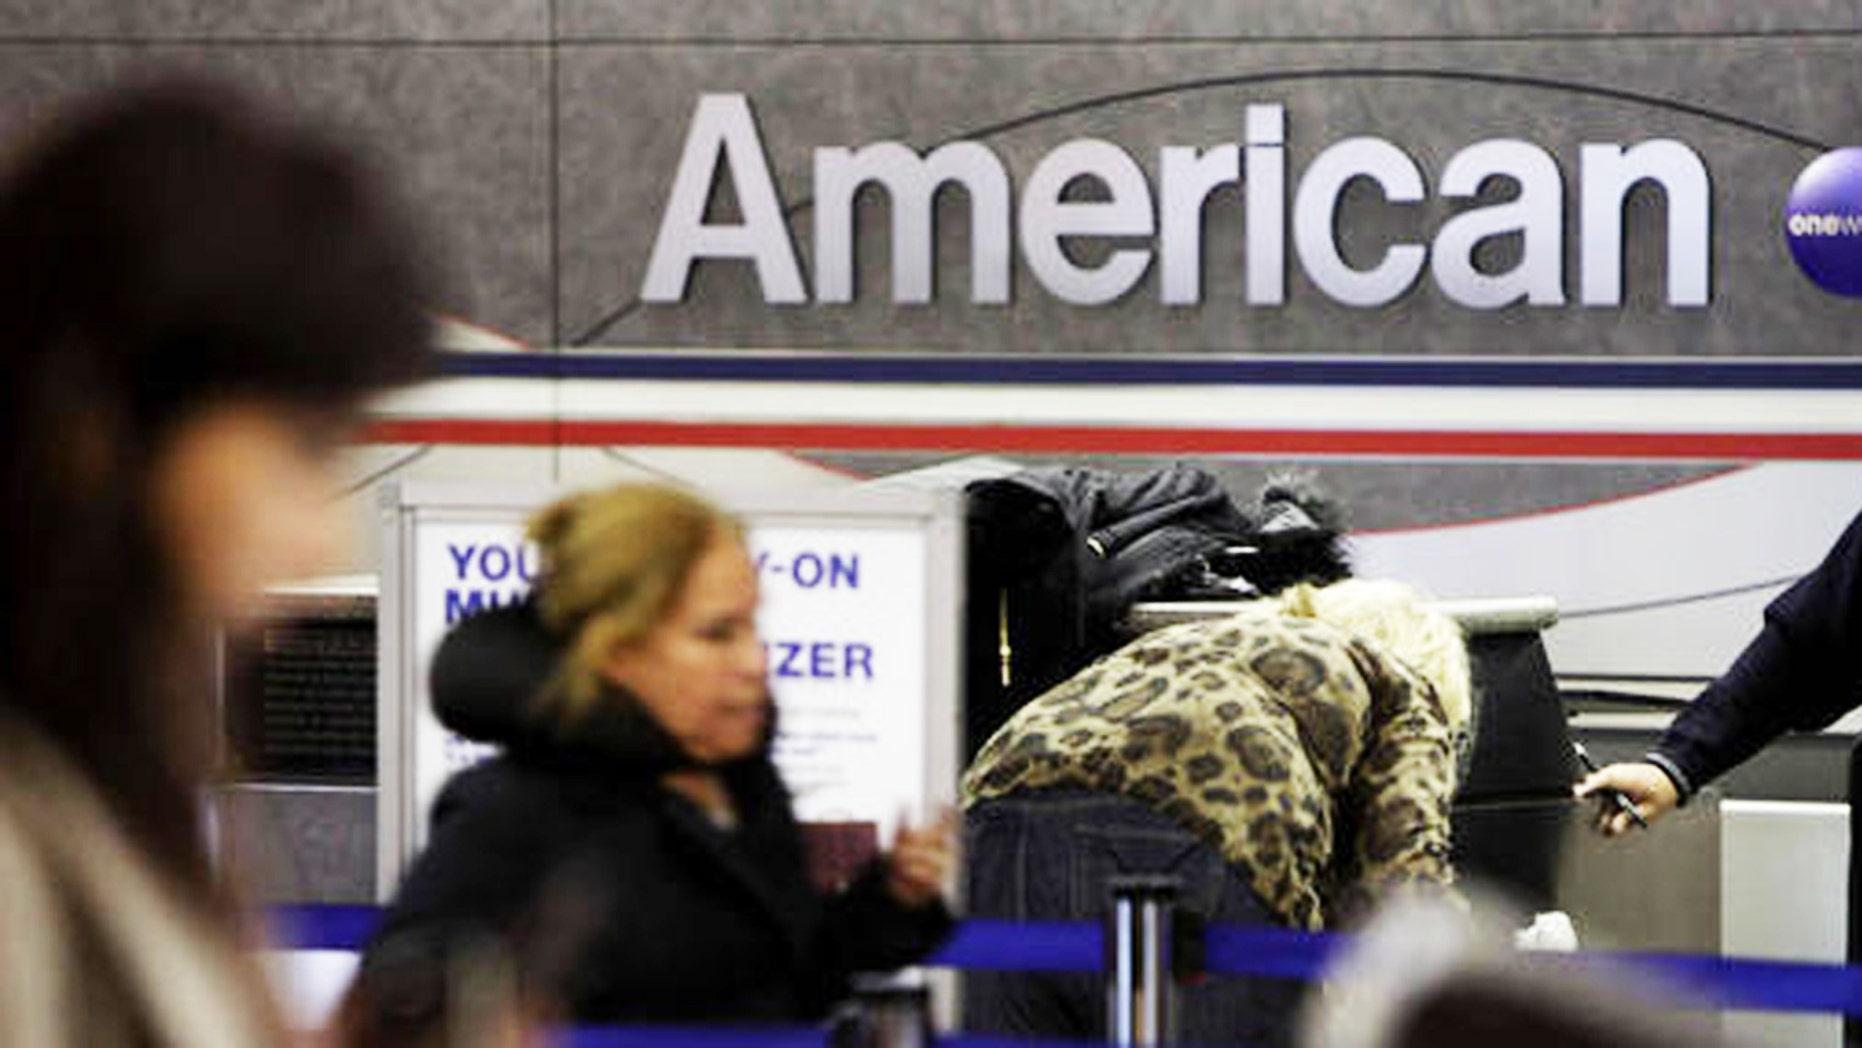 A passenger's meltdown was captured after a 12-hour furloughed flight.